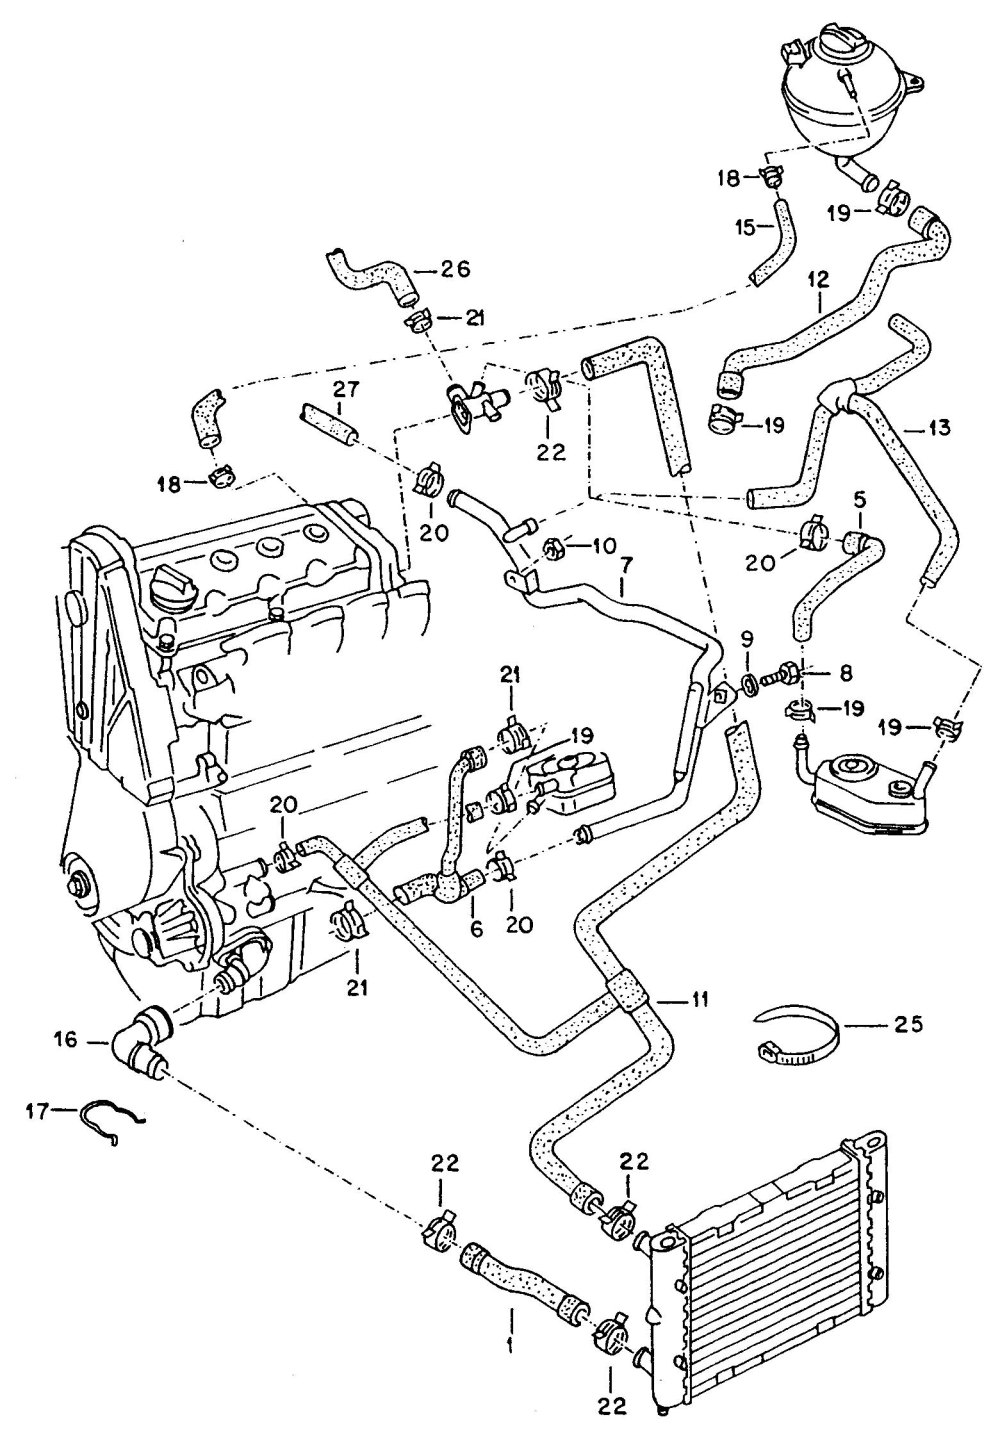 medium resolution of 1997 jetta engine diagram schematic wiring diagrams golf gti vr6 1997 gti vr6 engine diagram